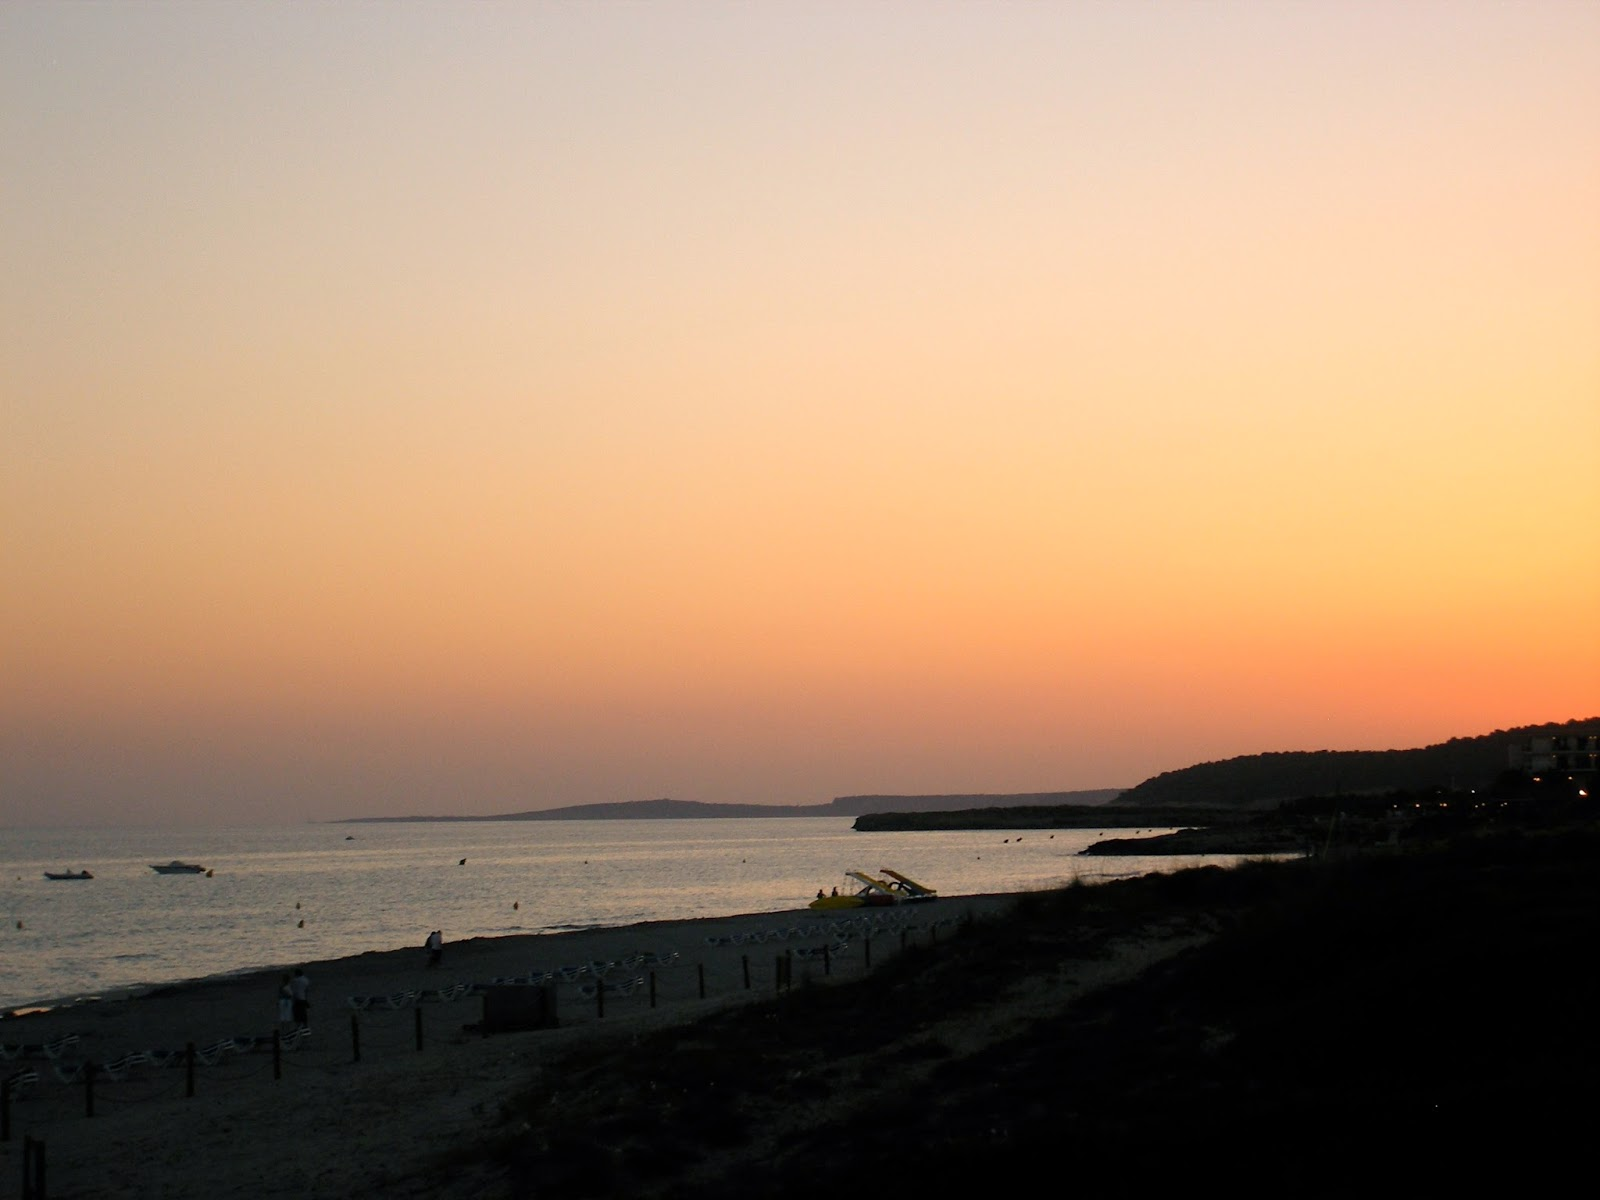 Travel Inspiration | Menorca, Spain | beach sunset at dusk